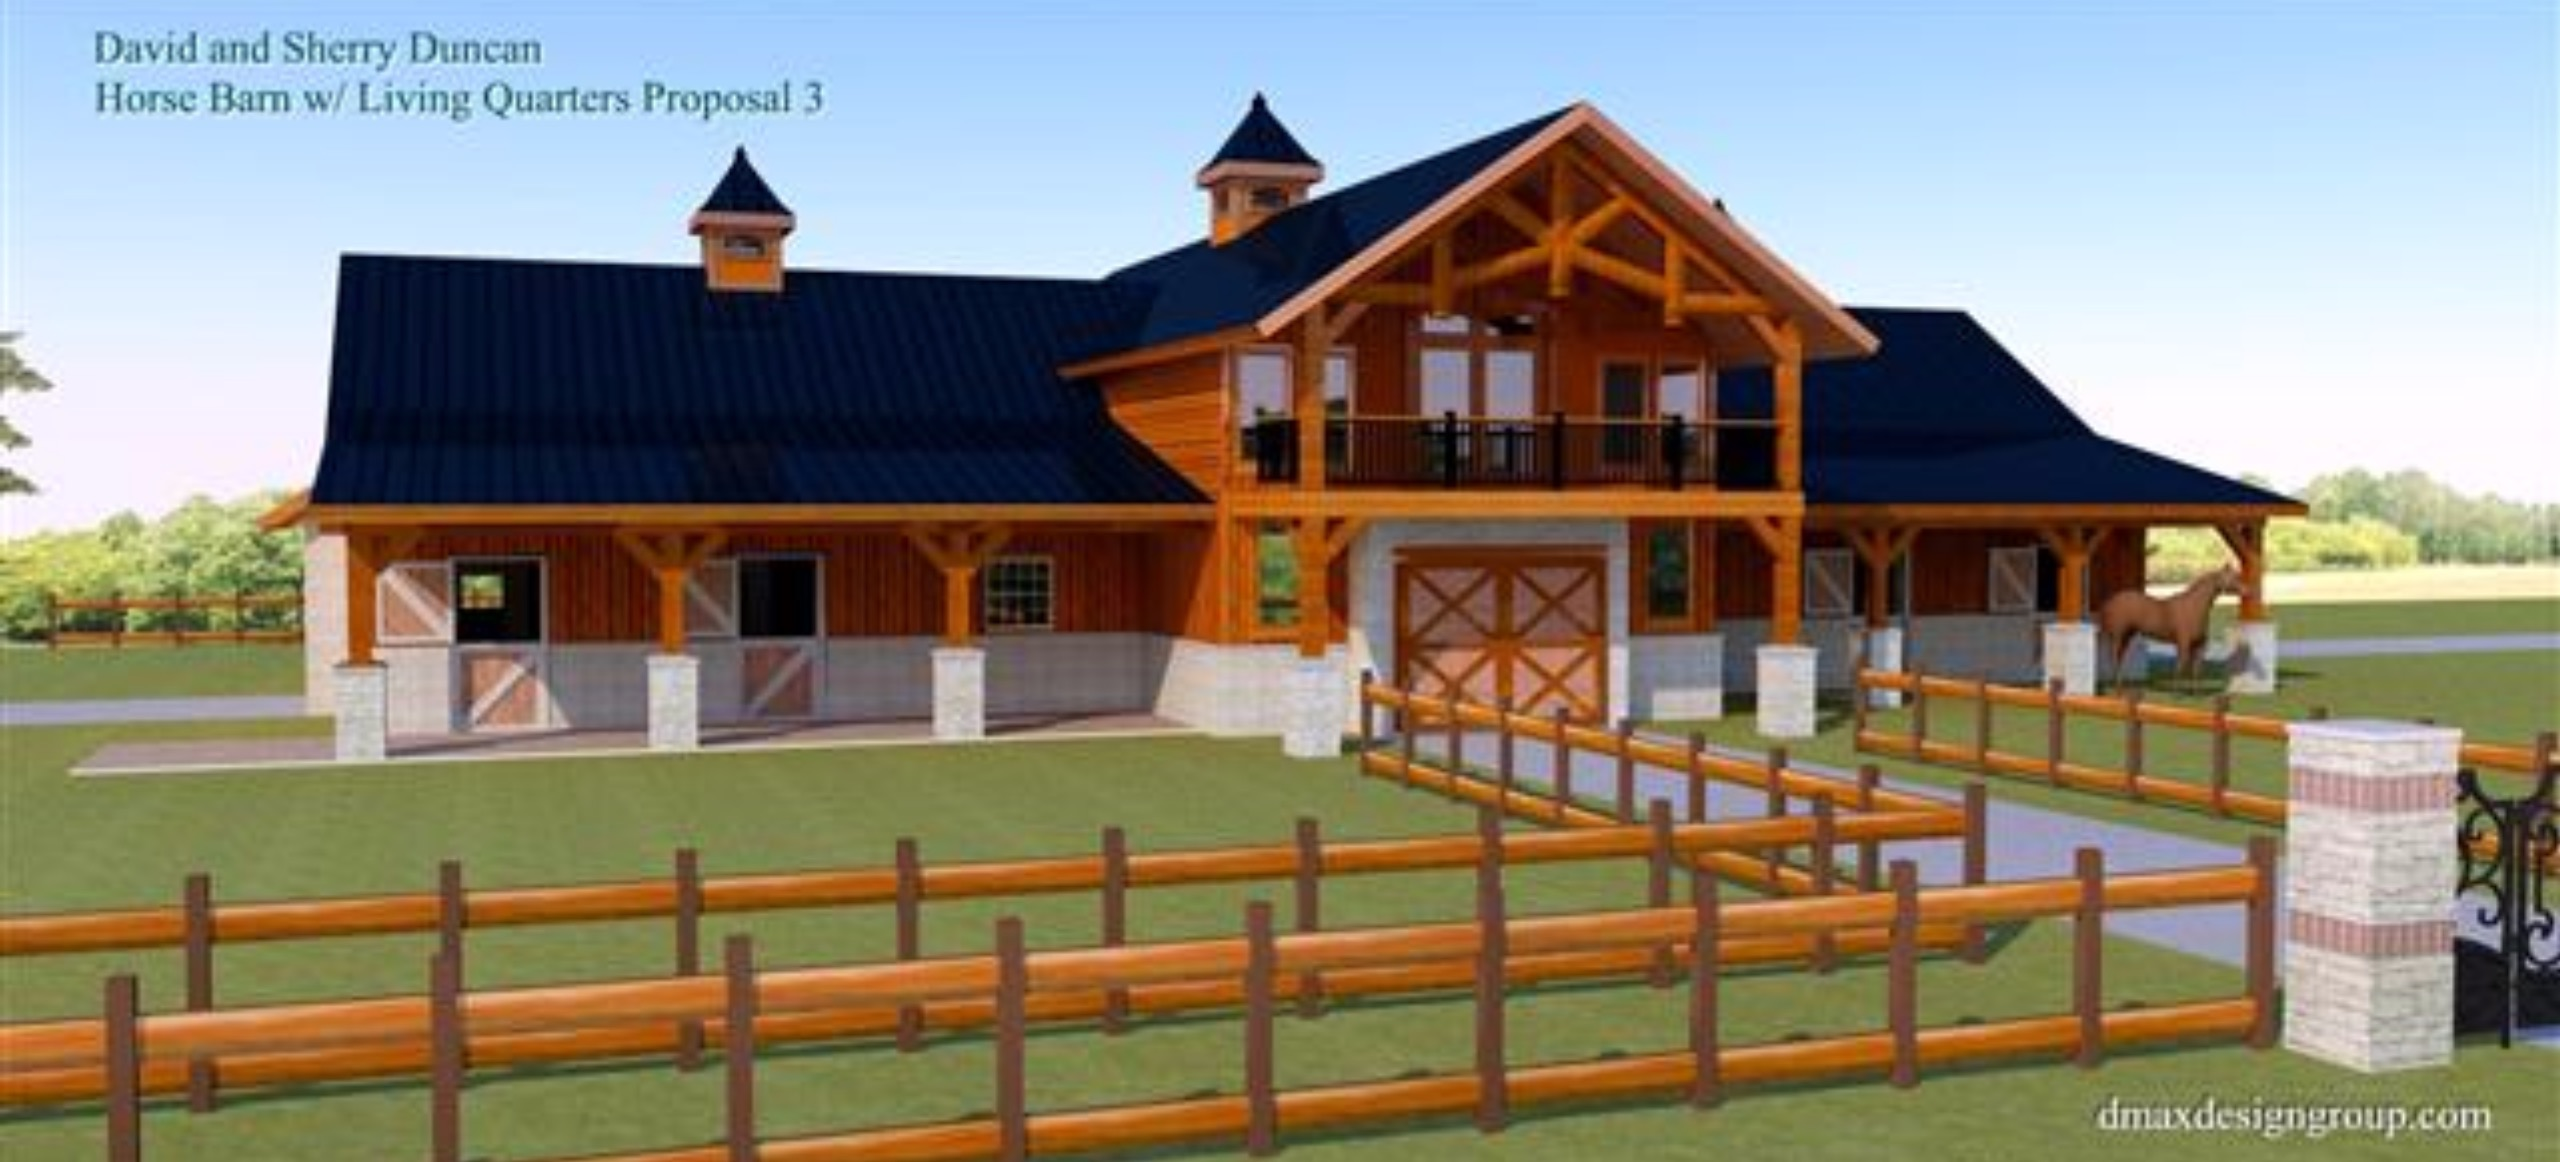 Awesome horse barn house combo plans contemporary best for Equestrian barn plans